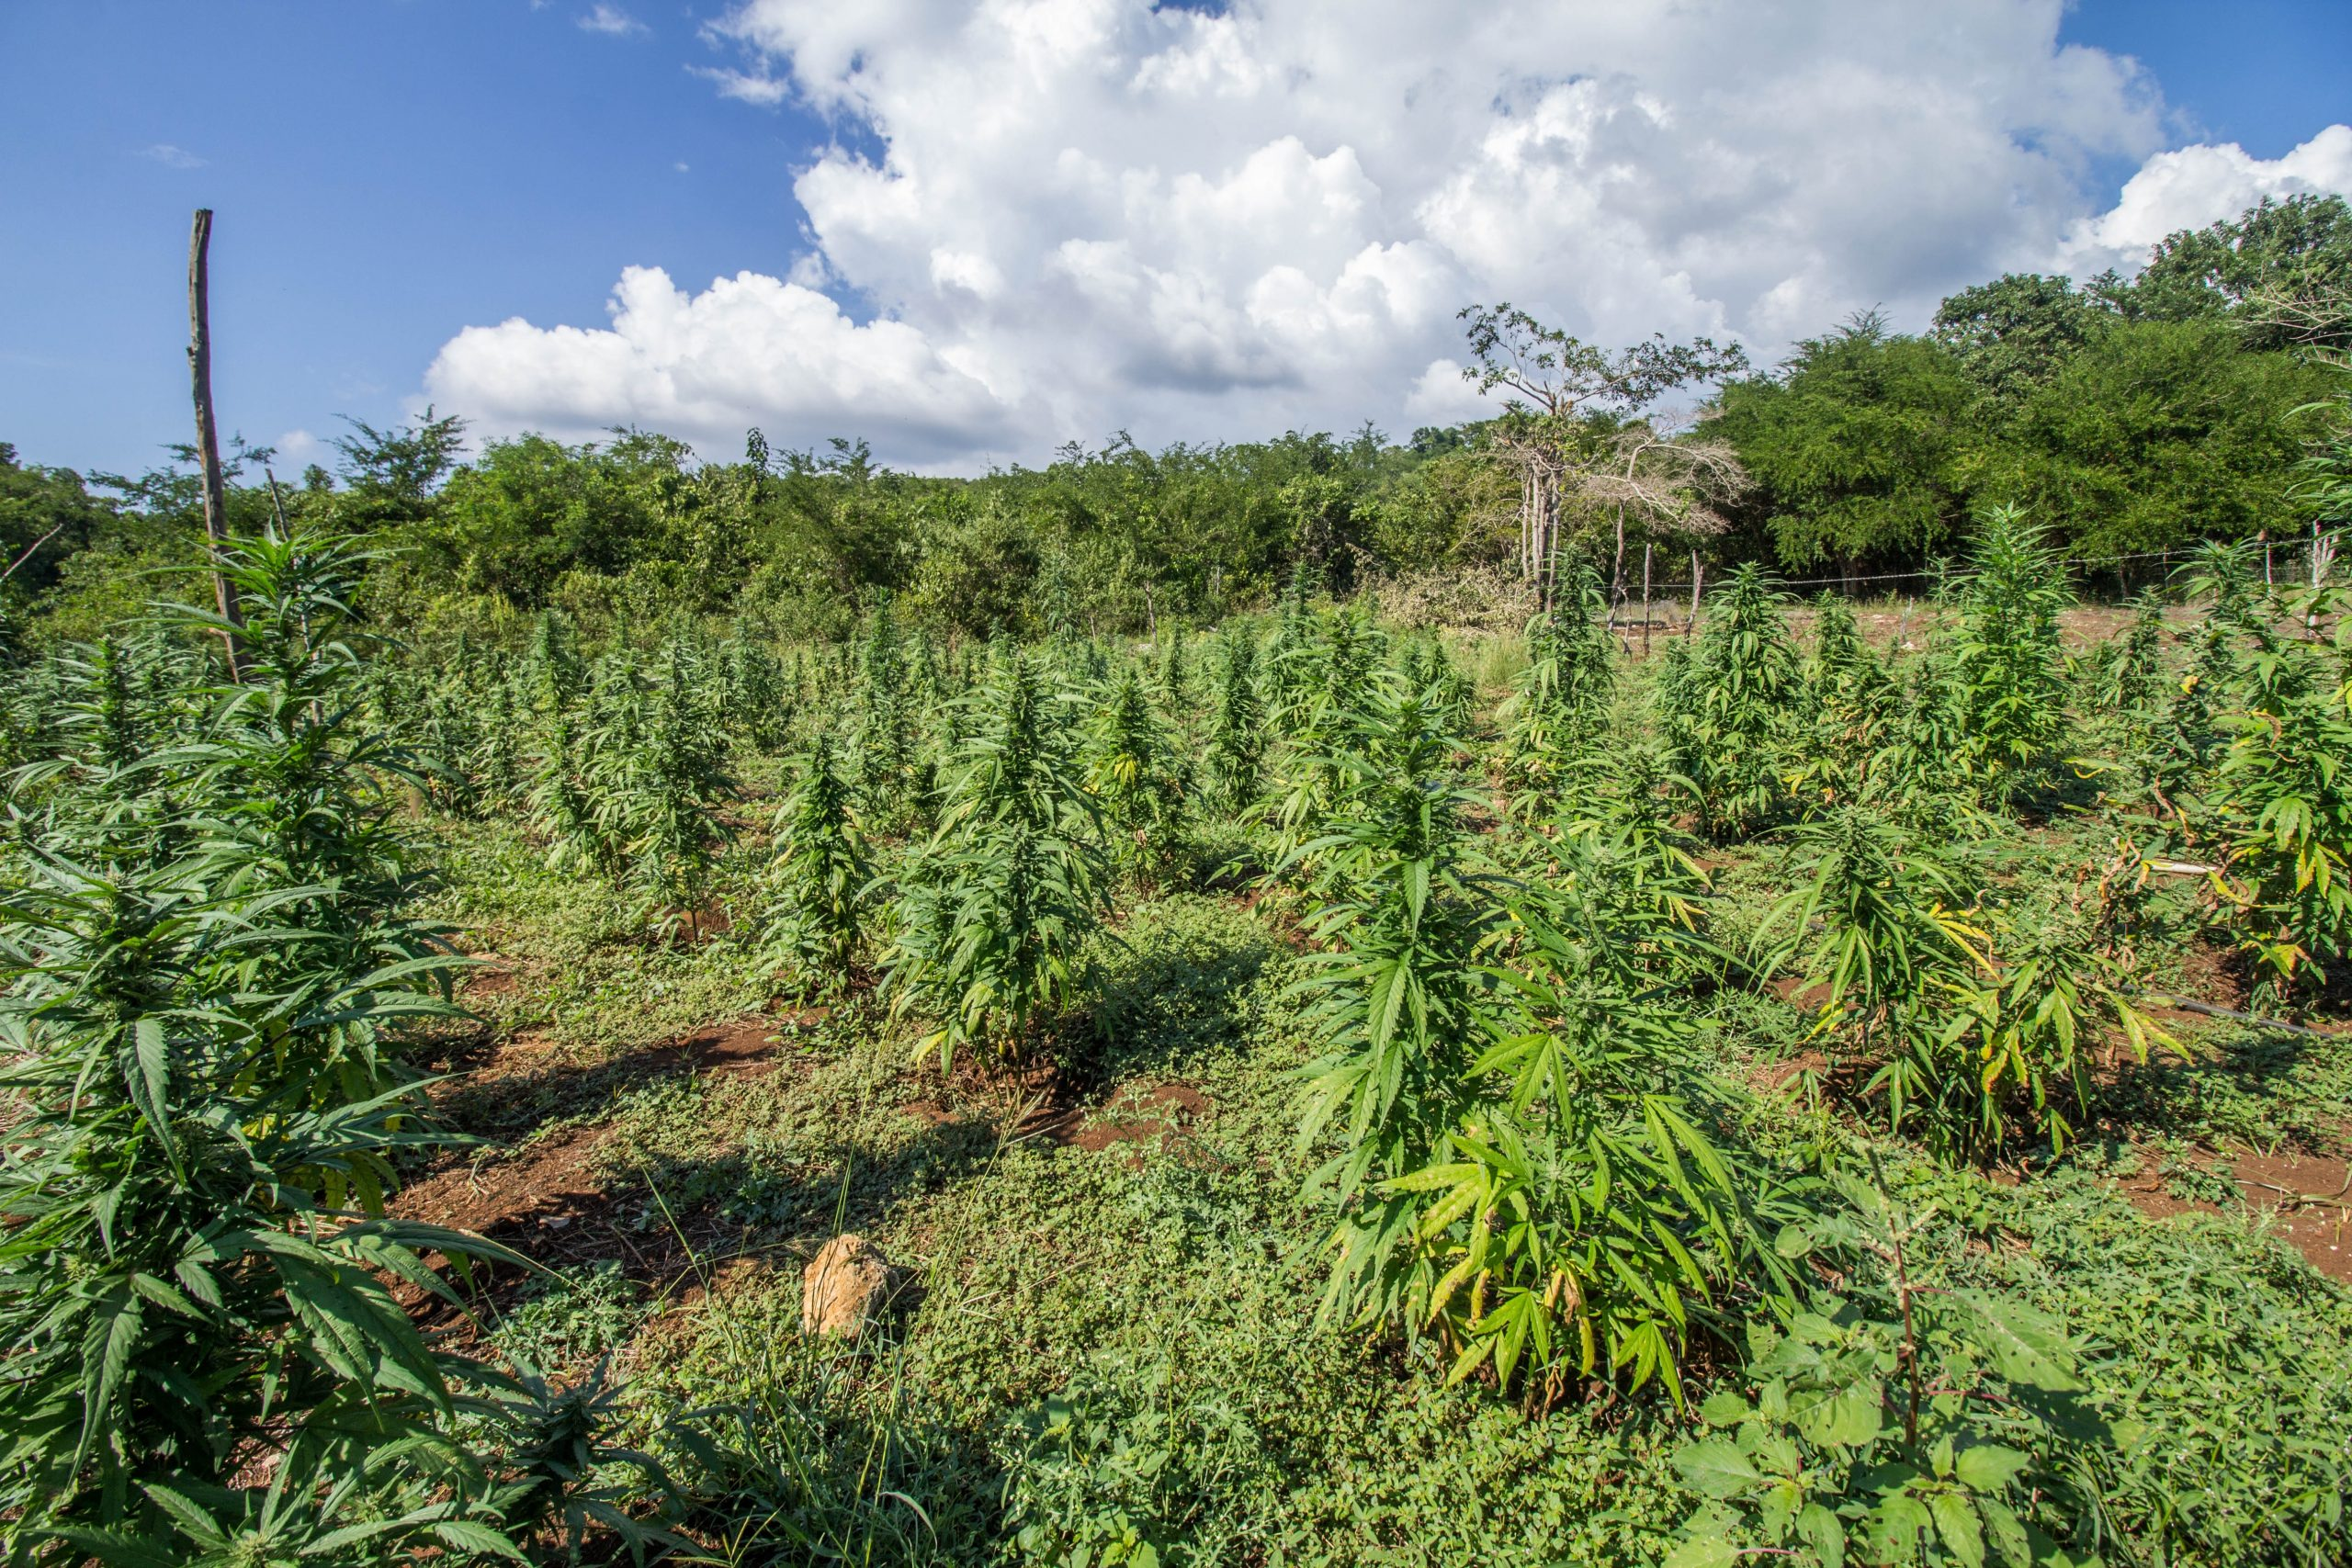 French startup plans to make energy from hemp biomass